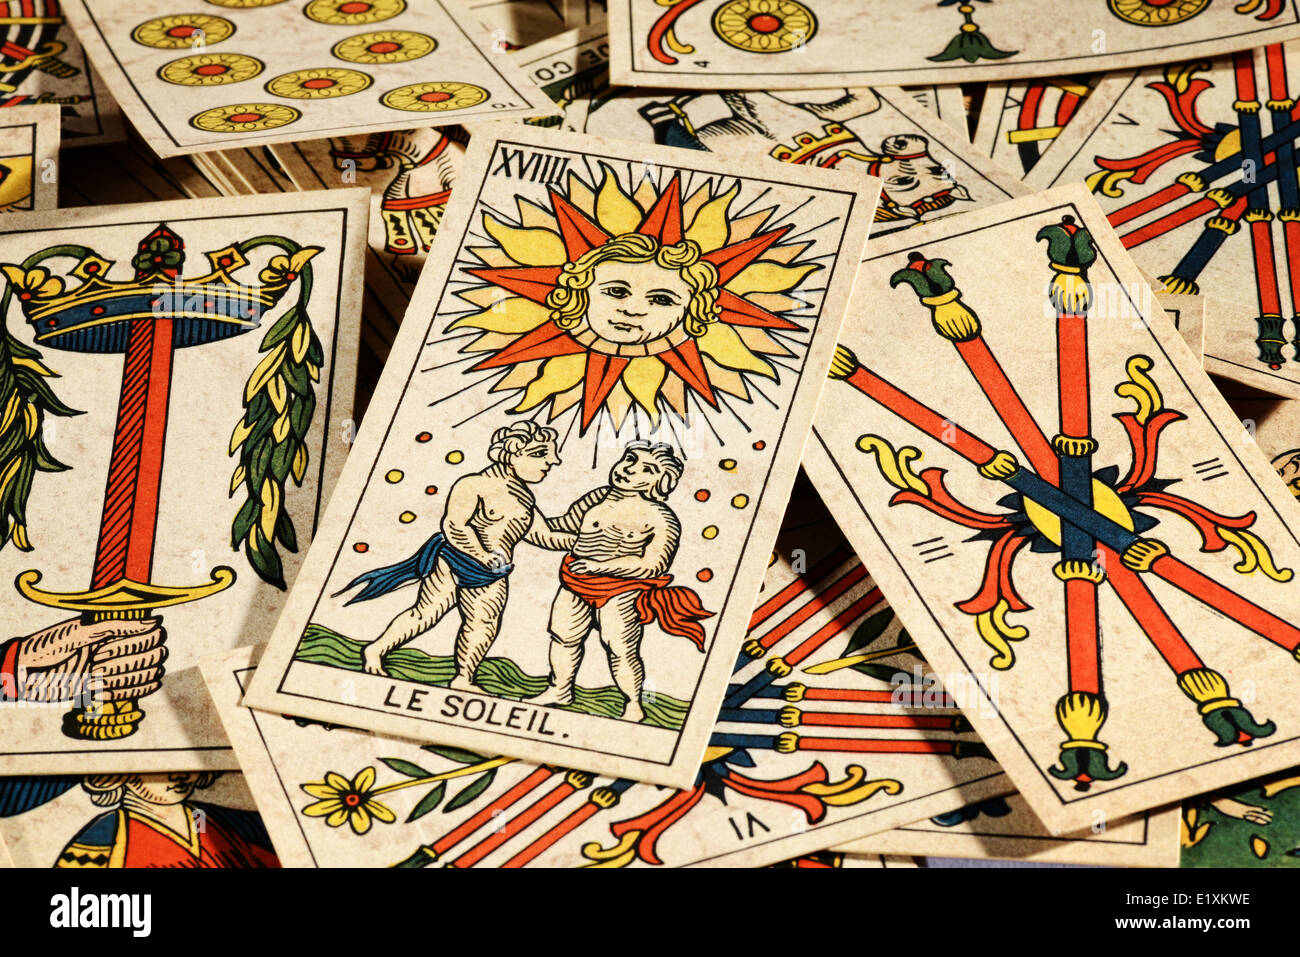 Old tarot cards - Stock Image